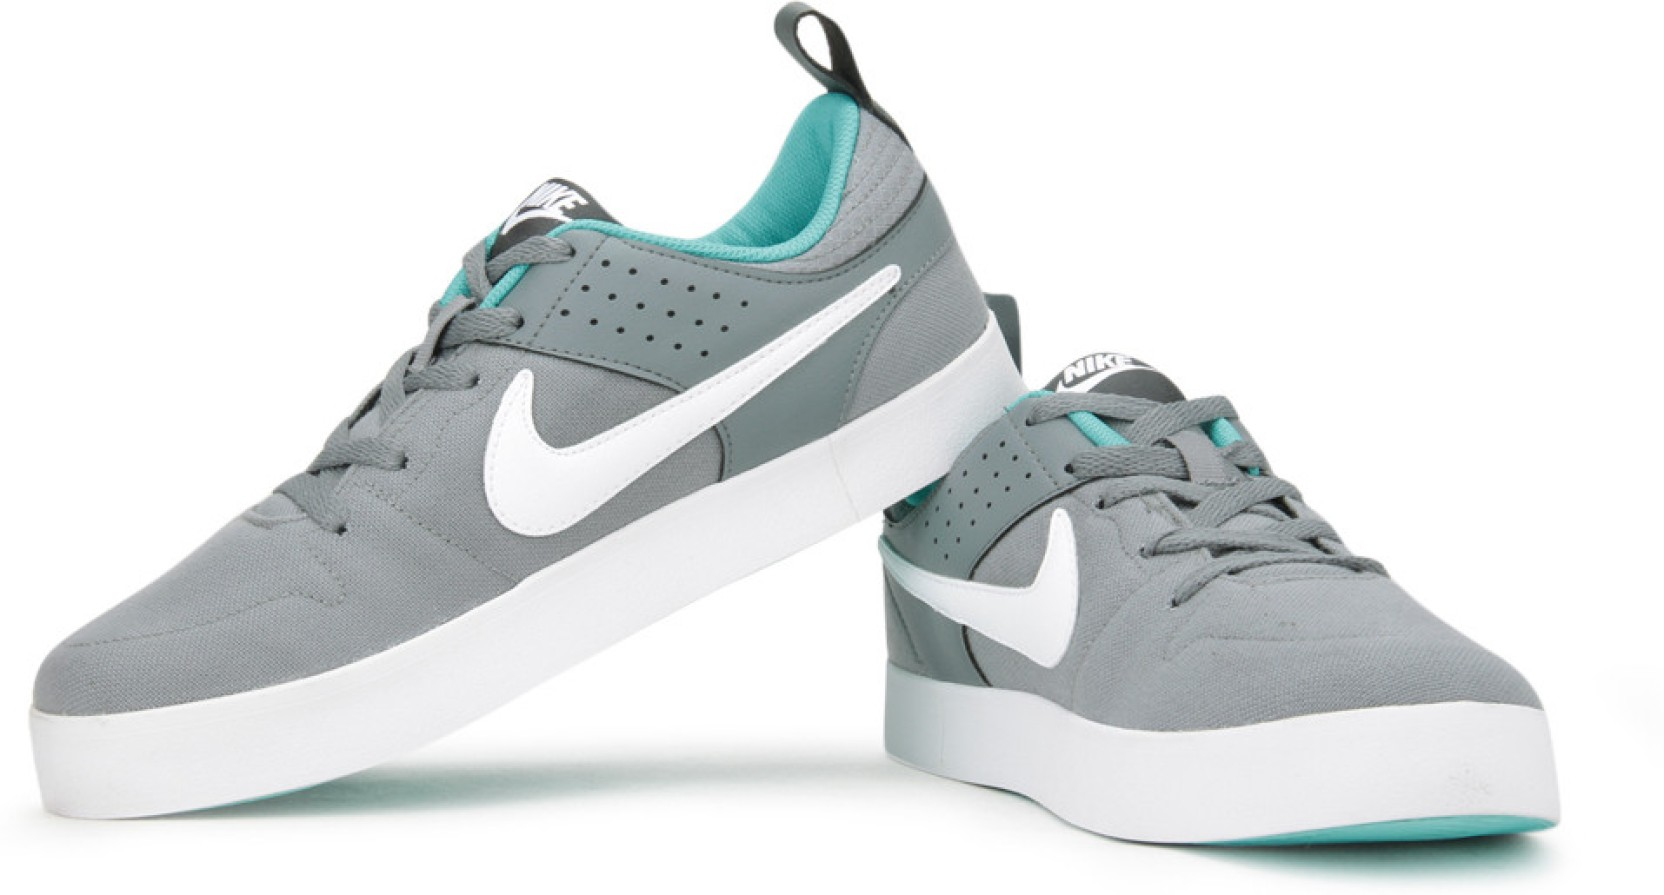 Nike Shoes Online Flipkart